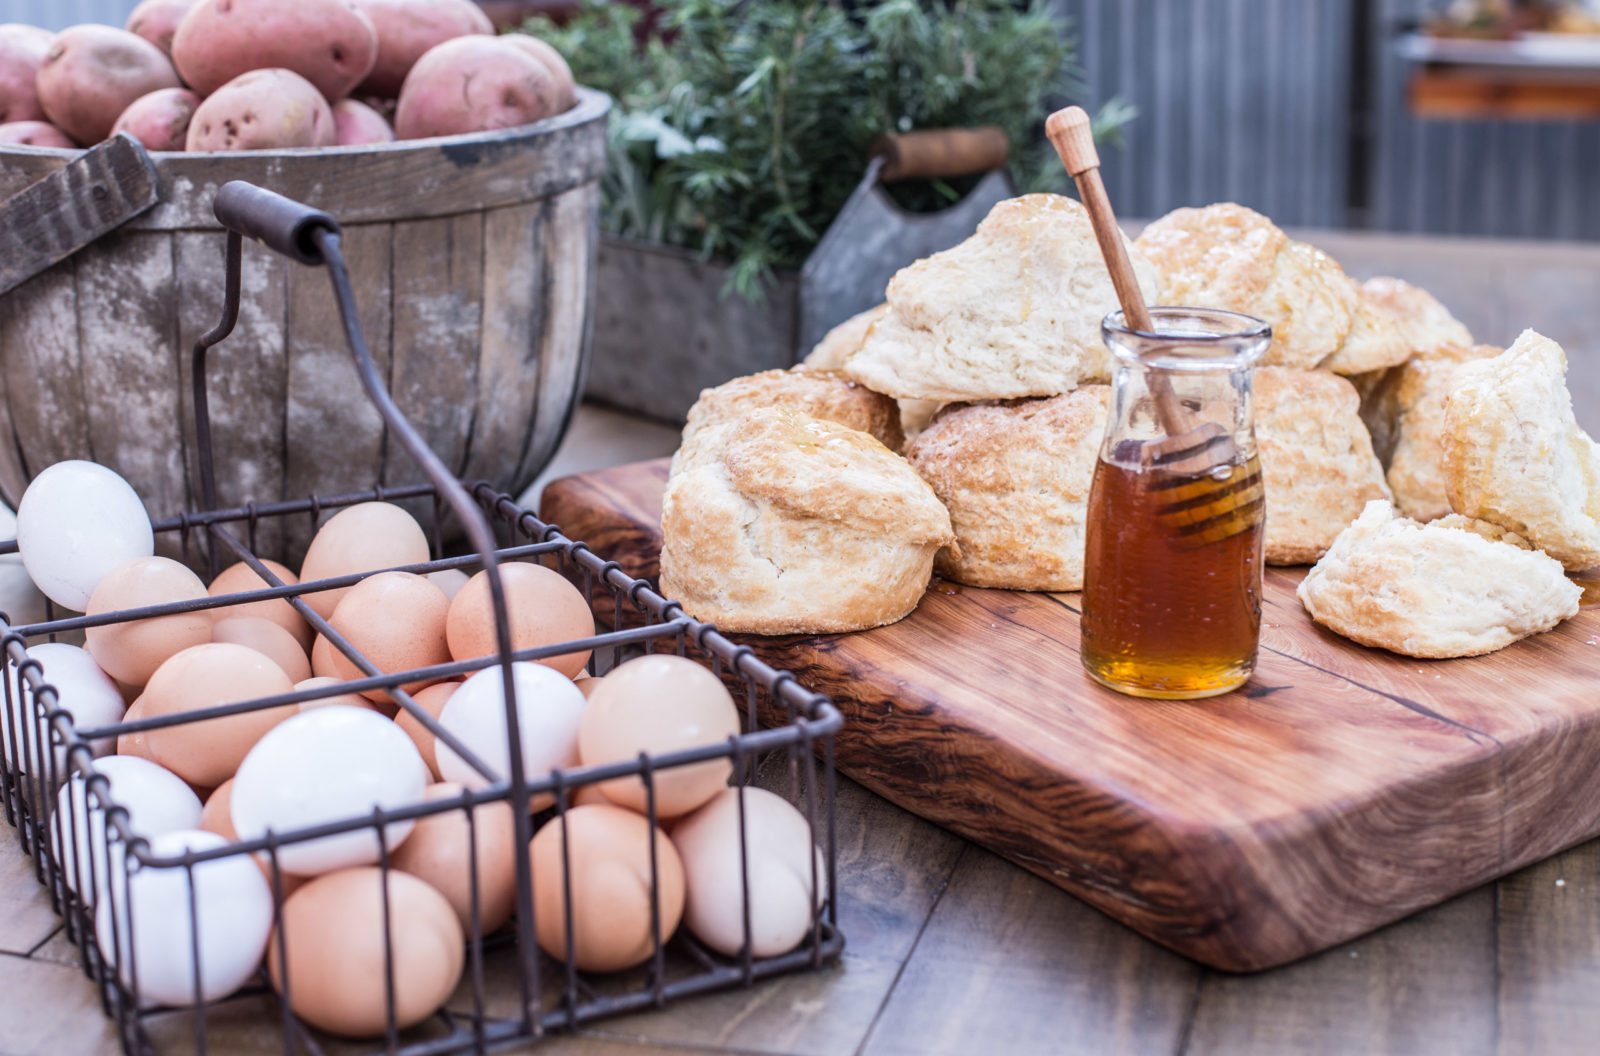 biscuits with jar of honey, basket of eggs, and basket of potatoes